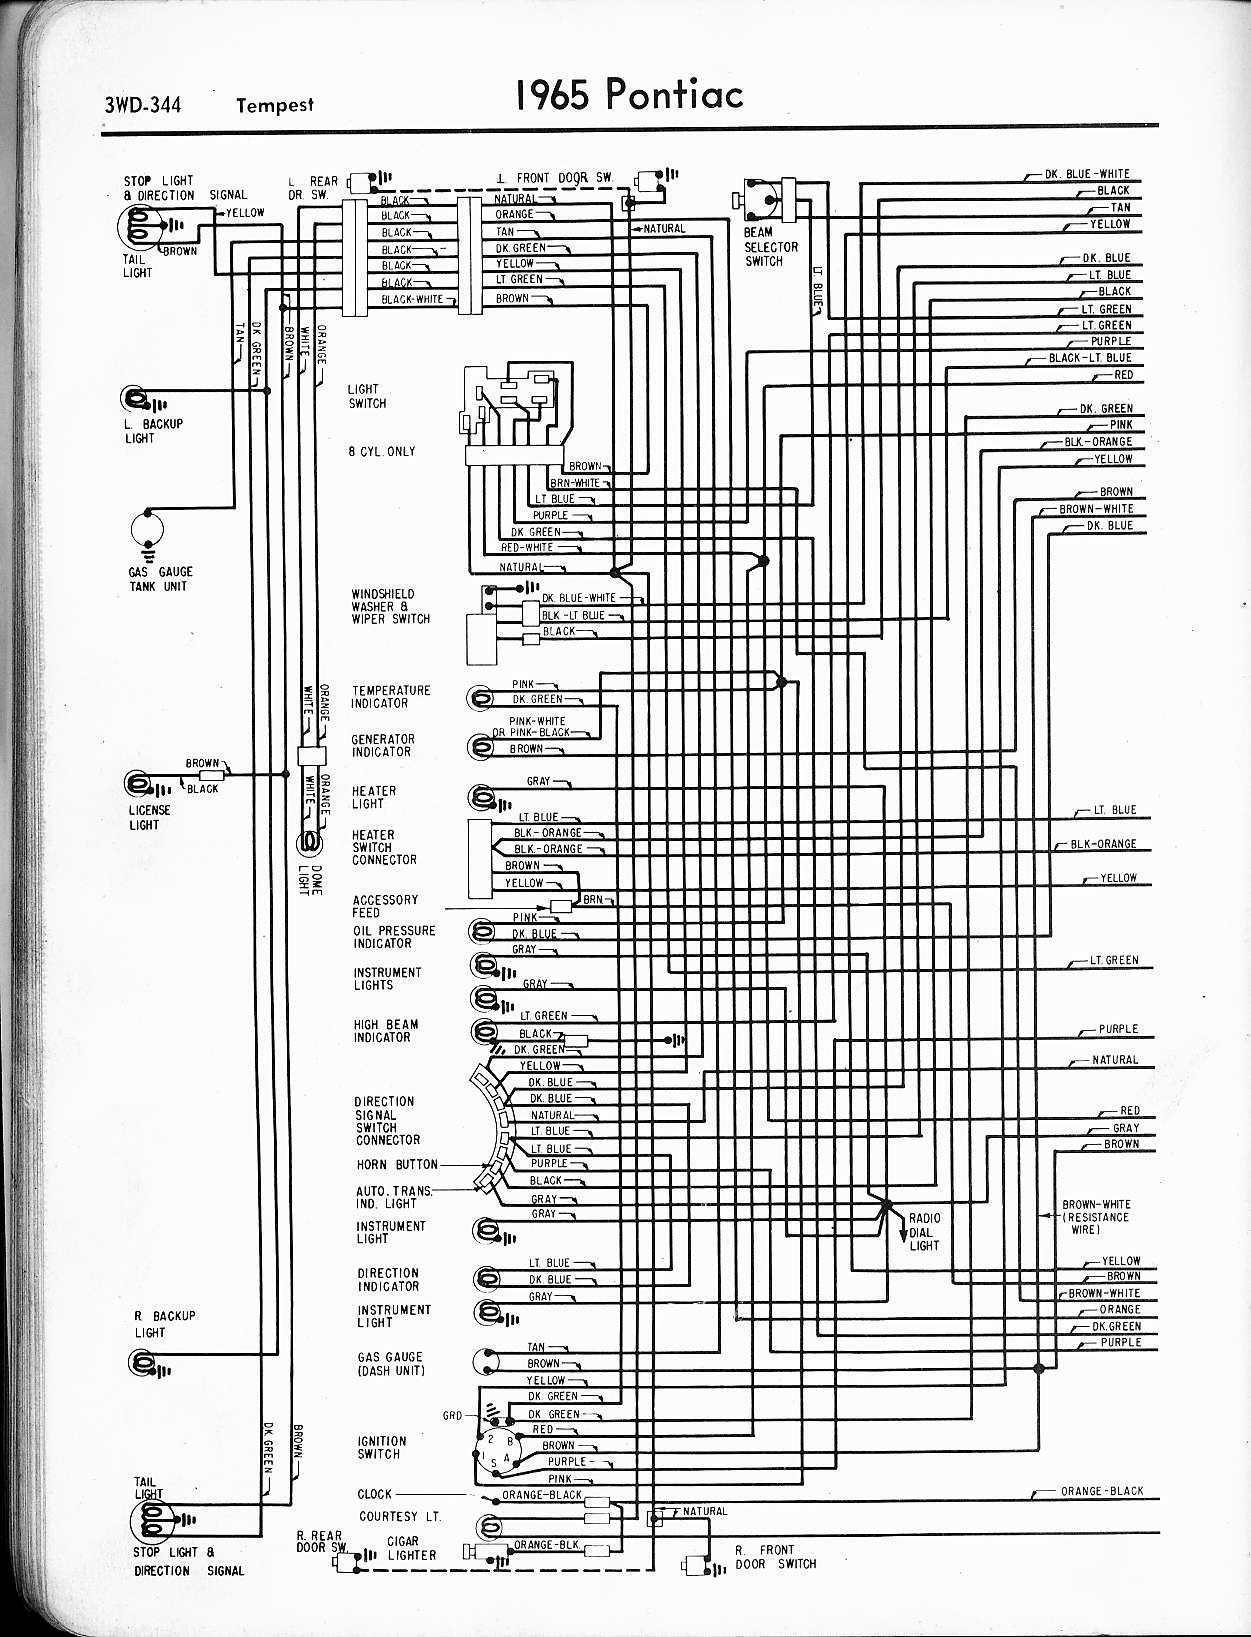 wiring diagram 1964 thunderbird accessories wiring diagram usedwiring diagram 1964 thunderbird accessories manual e book wiring diagram 1964 thunderbird accessories